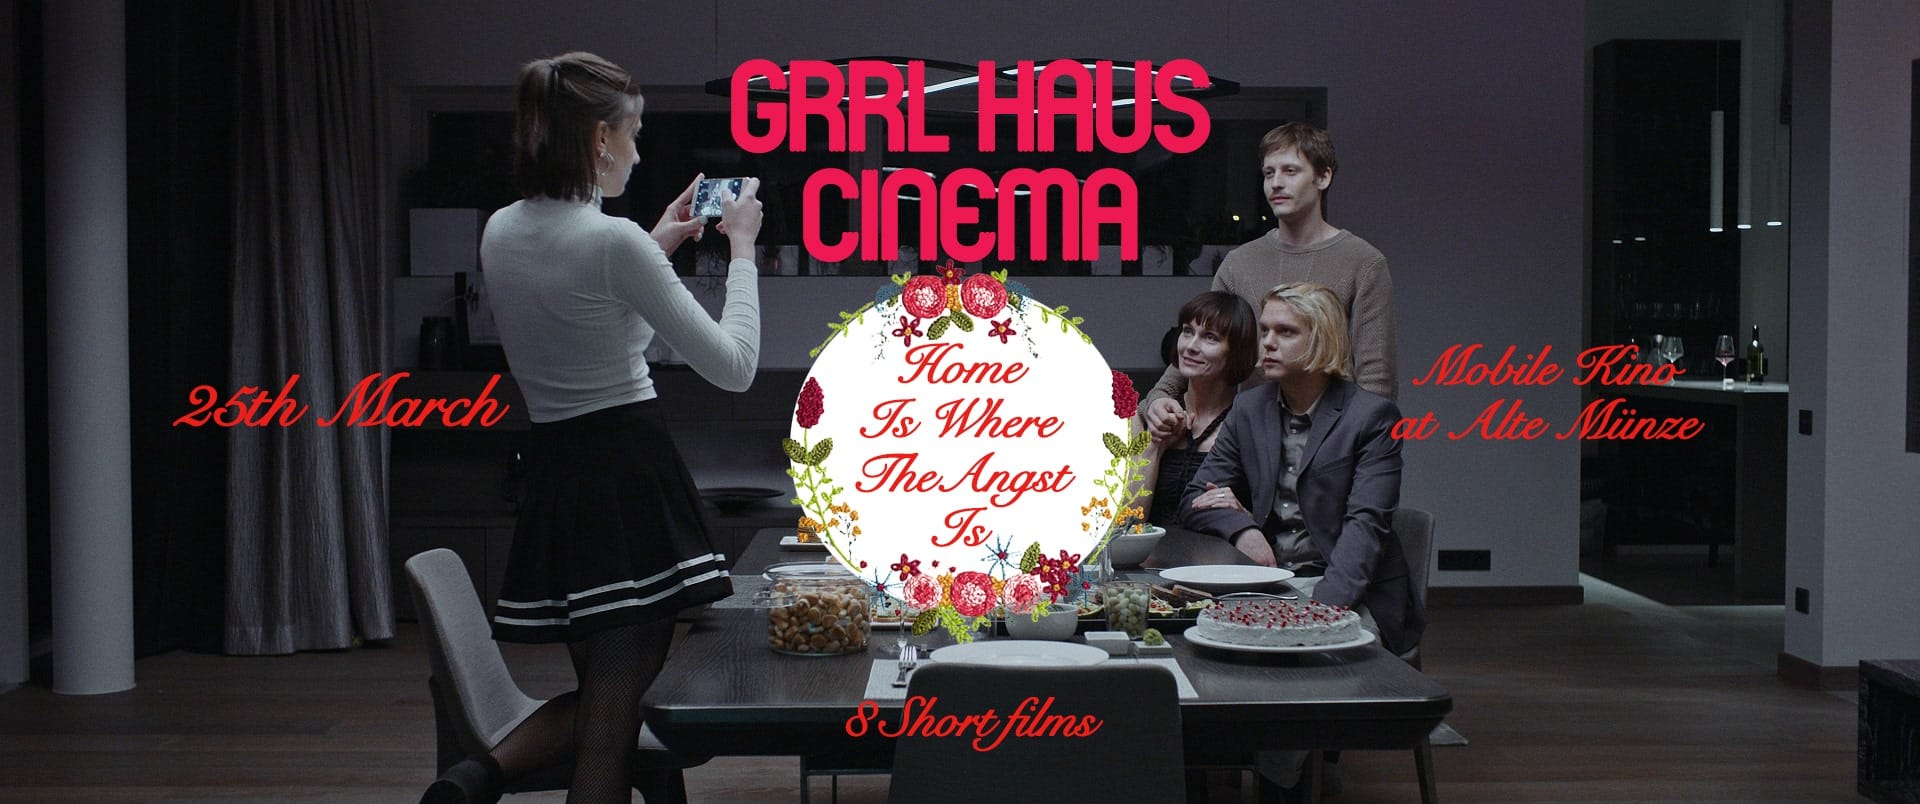 Wednesday 29.04.20 – 8:30pm: Home Is Where The Angst Is / GRRL HAUS